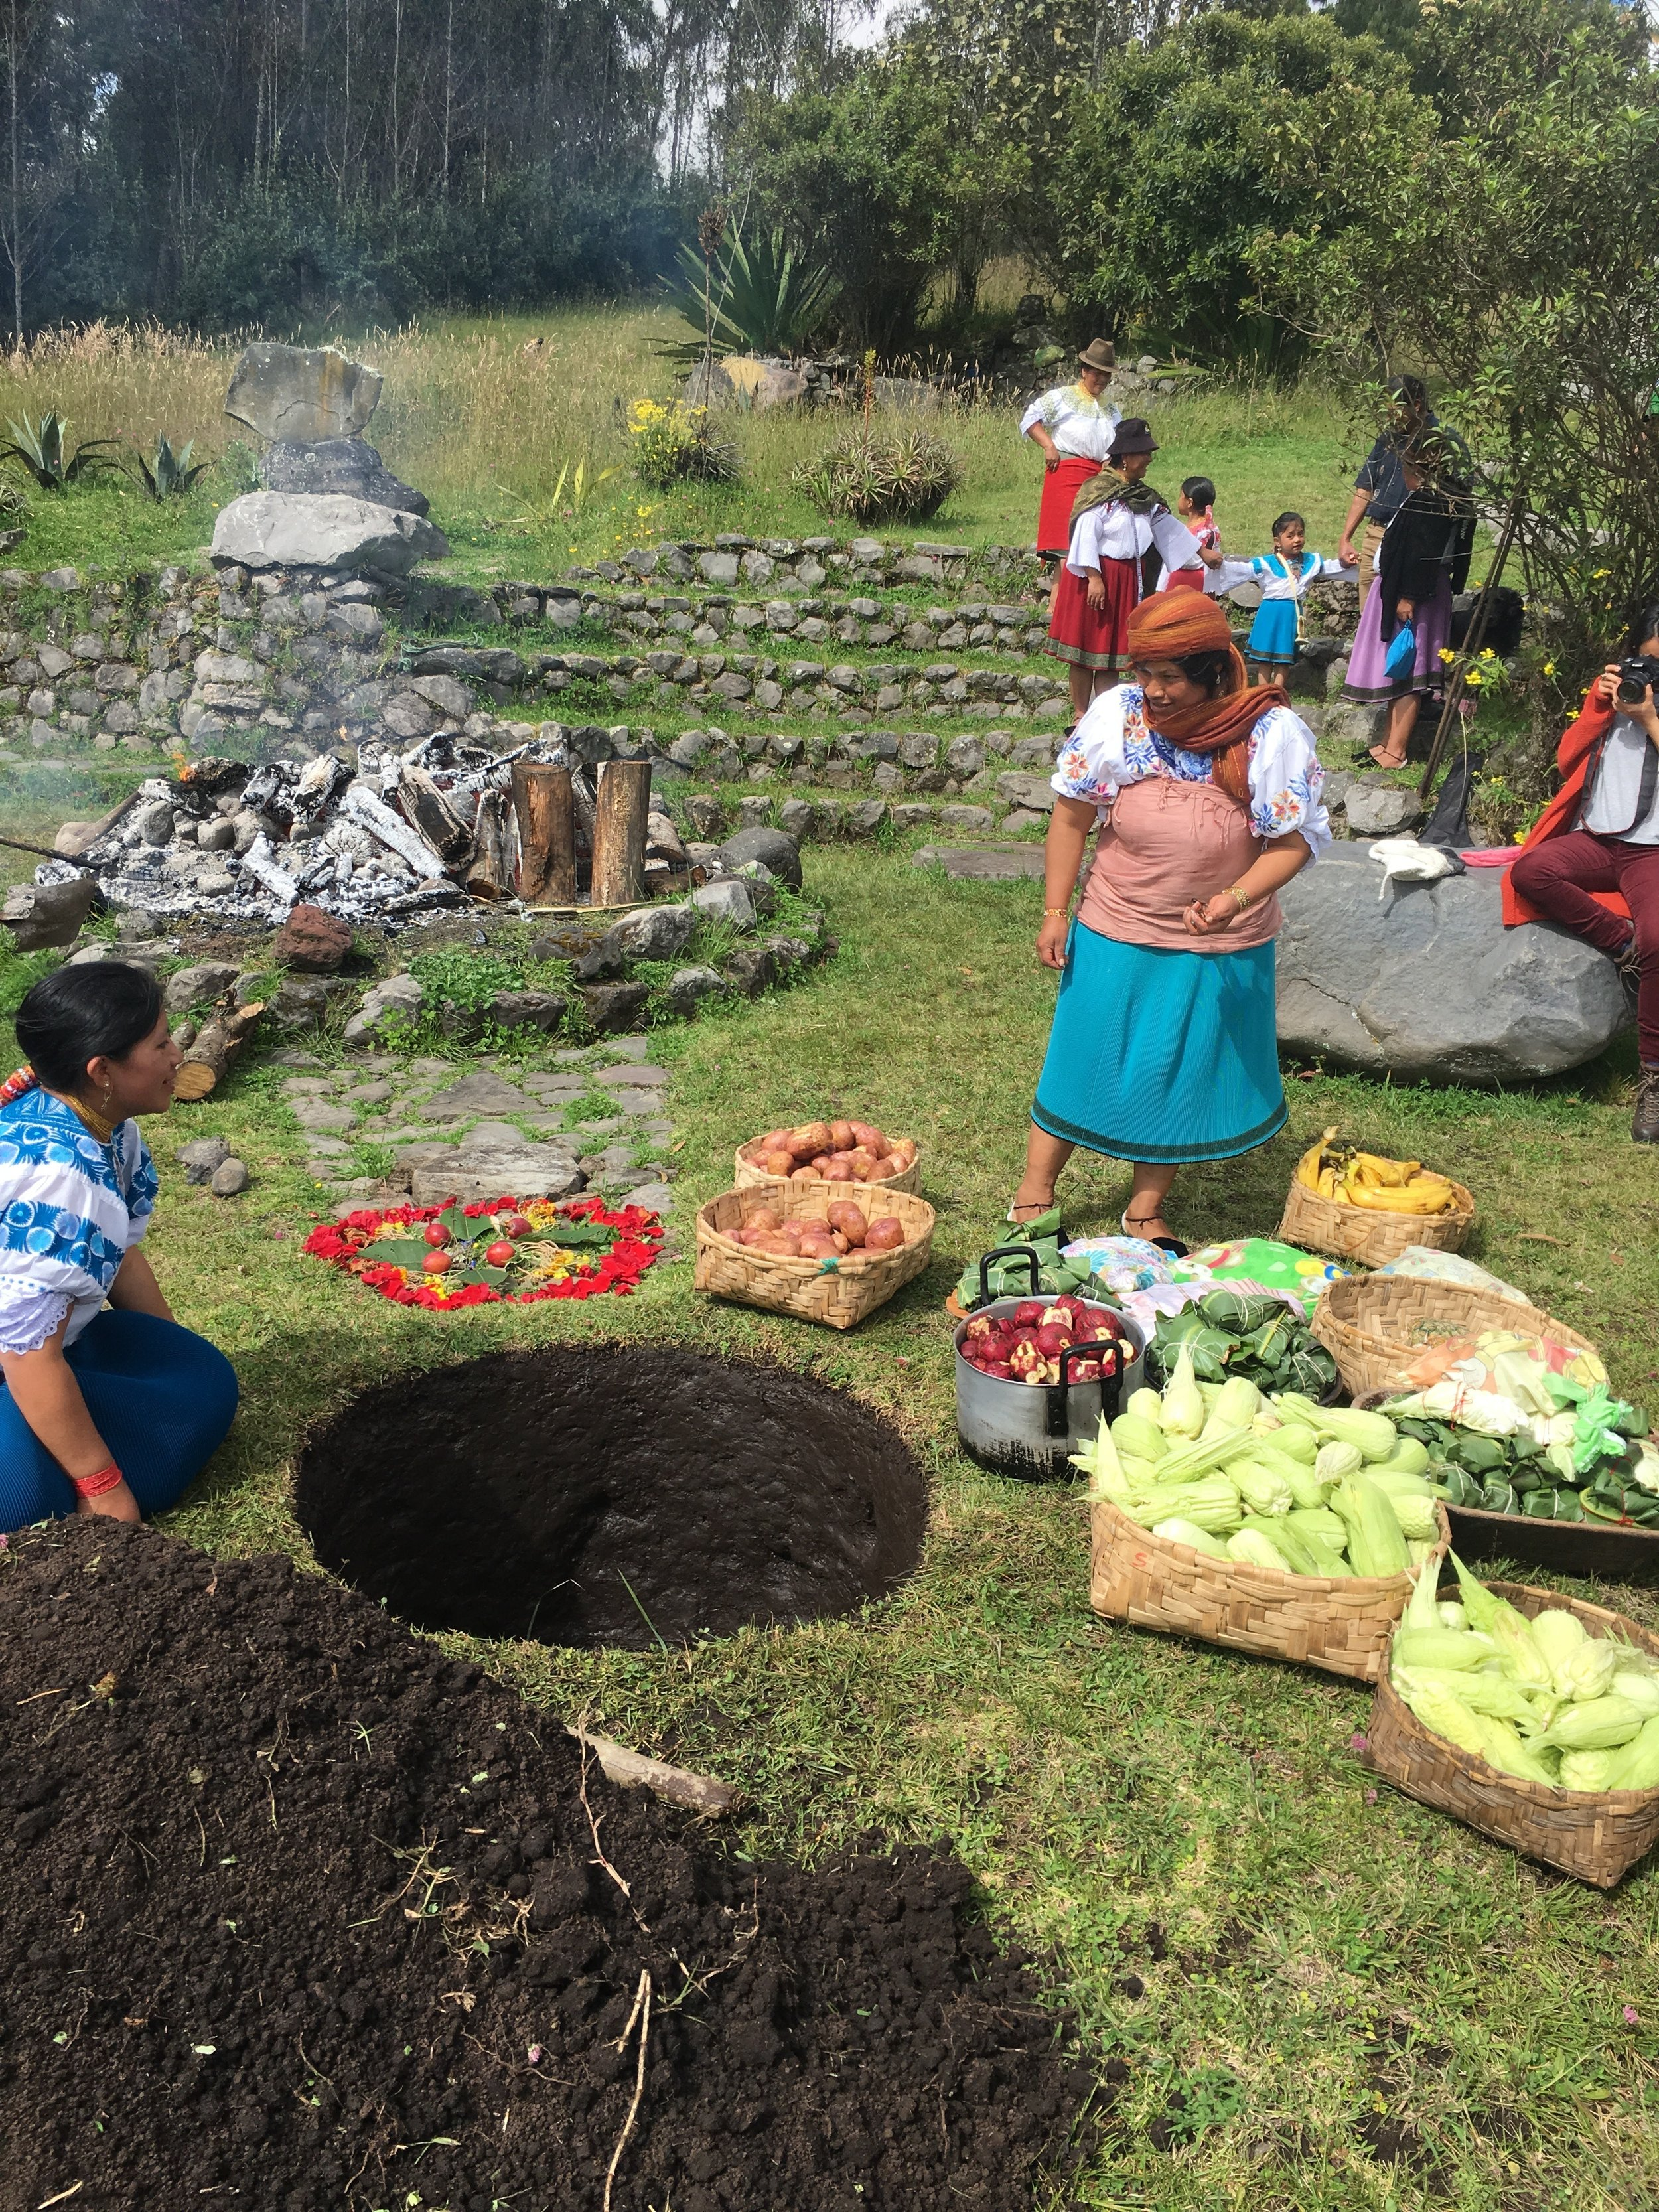 Preparing to fill the hole with the hot stones, potatoes, sweet potatoes, corn, chicken wrapped in leaves, cabbage, pineapple, plantains, etc.